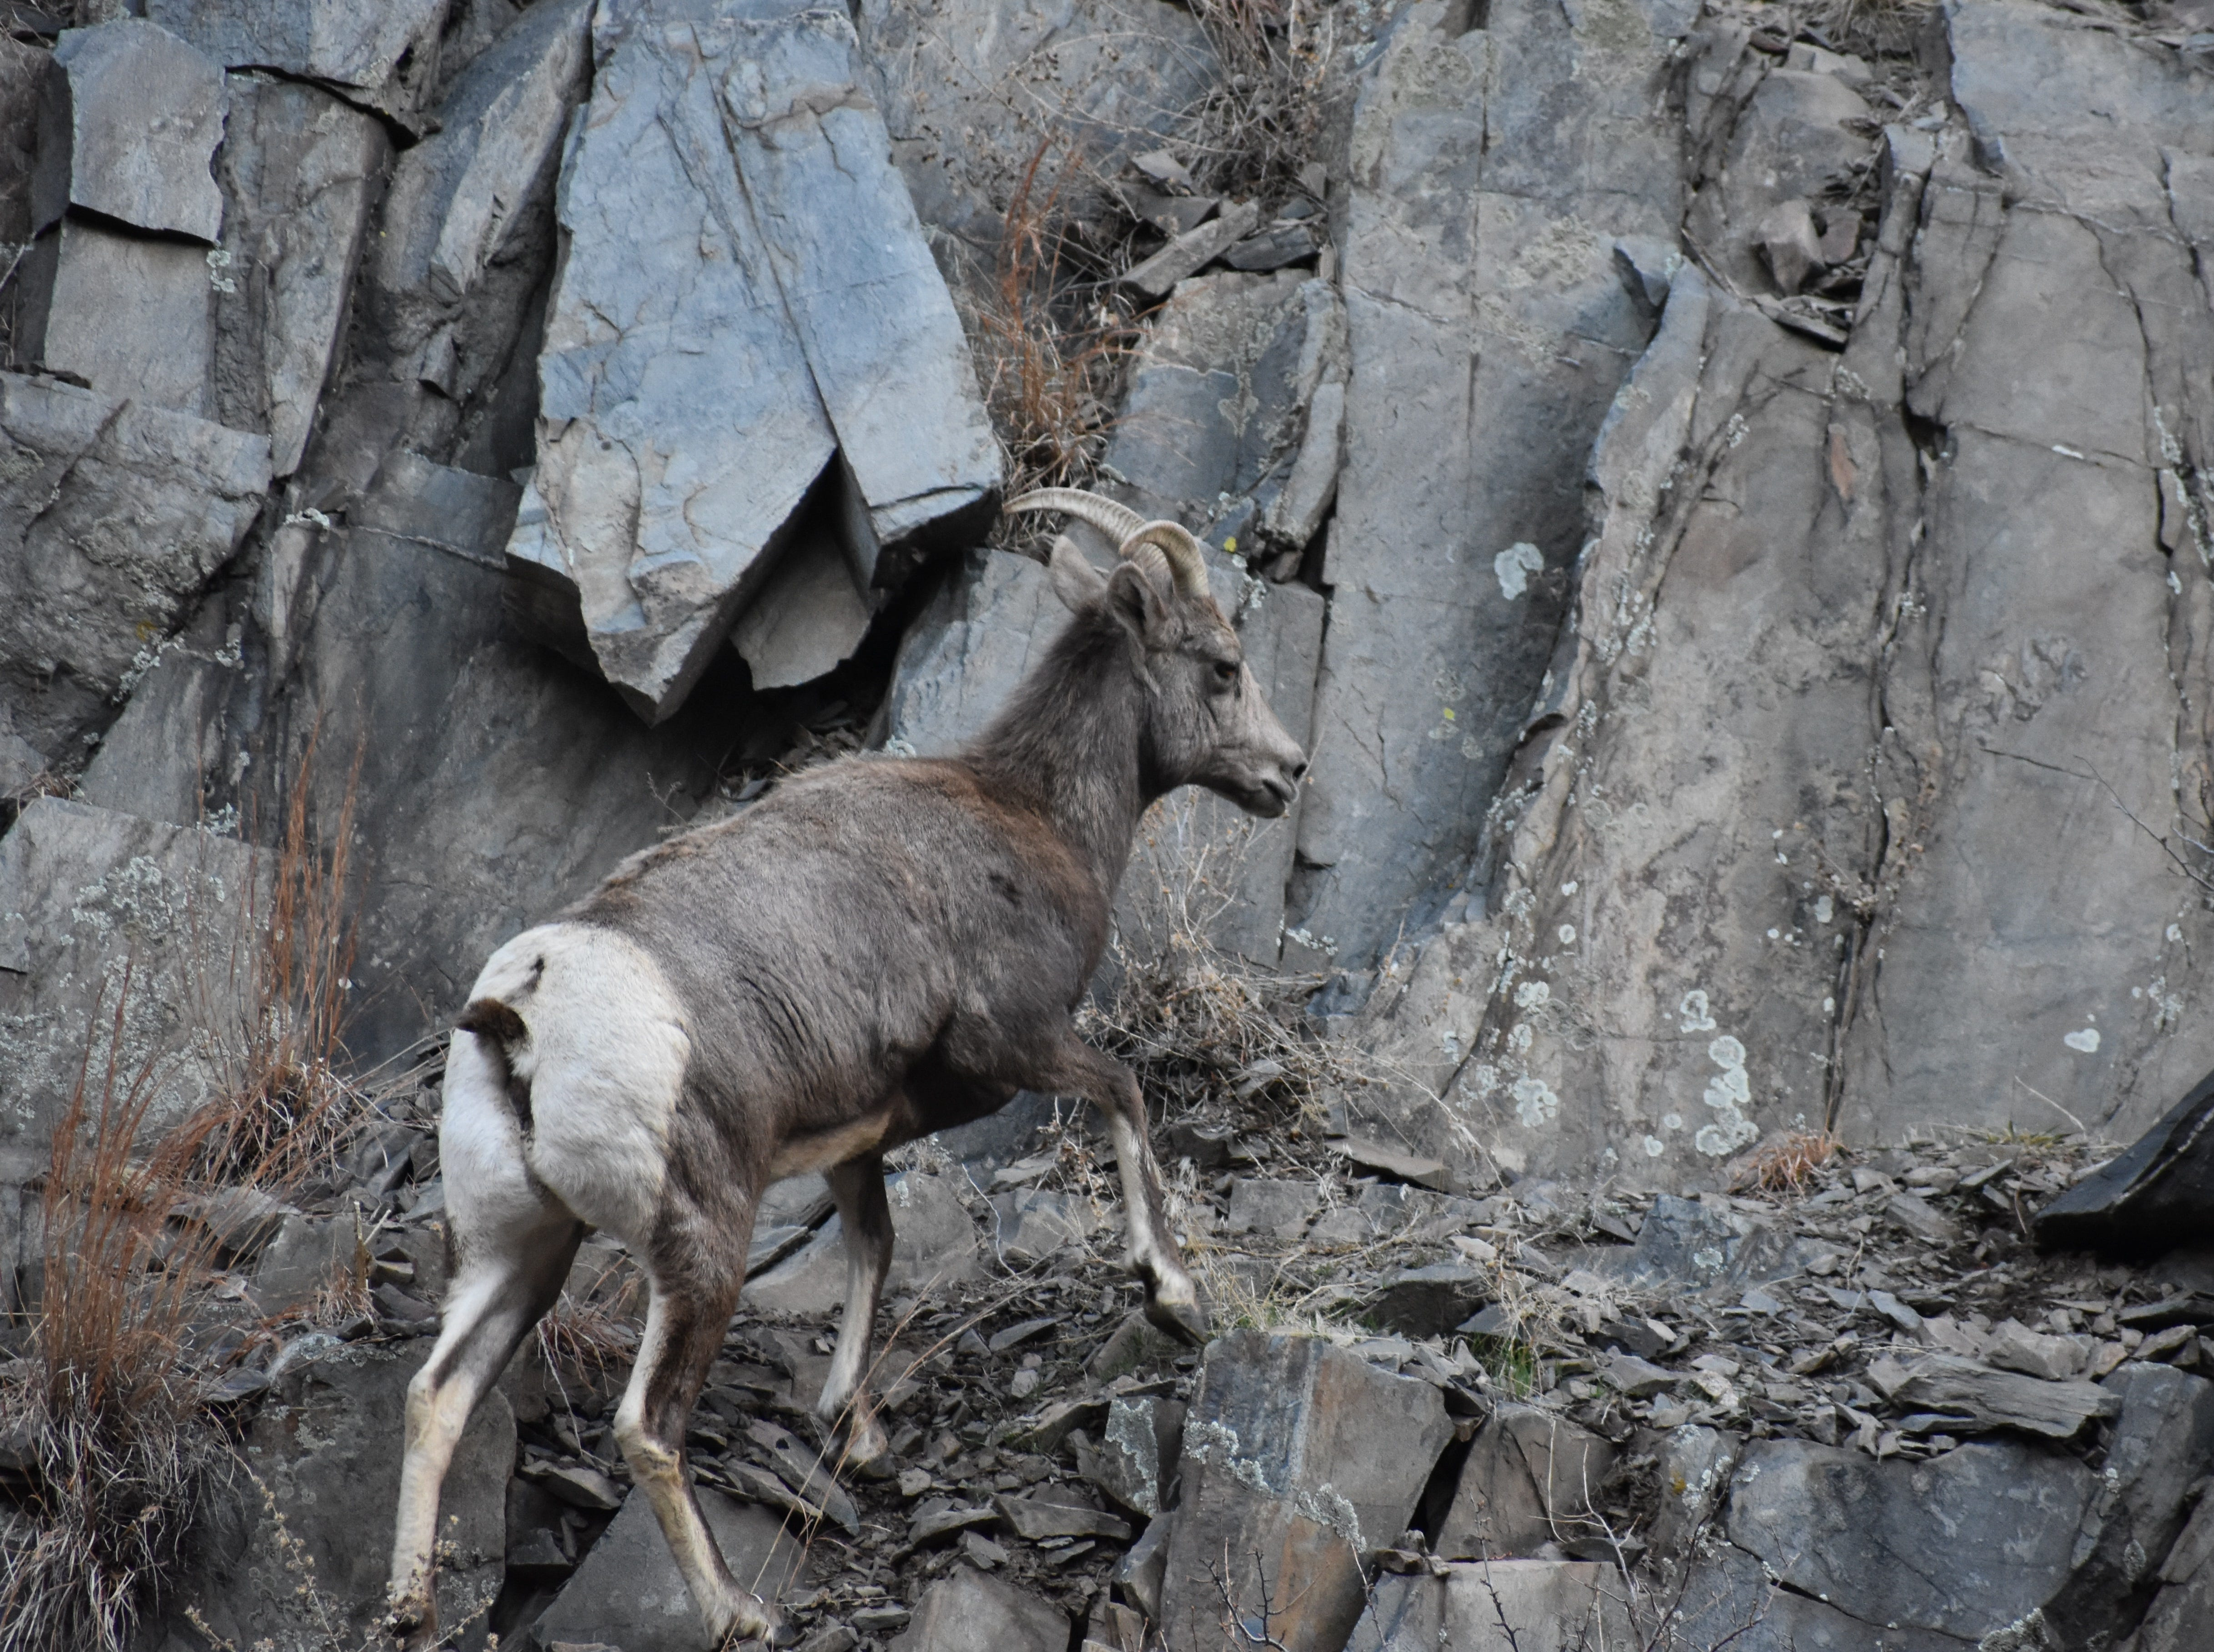 Male and female bighorn sheep have horns. Females have shorter horns that are not as curved. Horns are found on sheep, are not branched and aren't shed. Antlers are found on elk and deer, are branched and are shed annually.